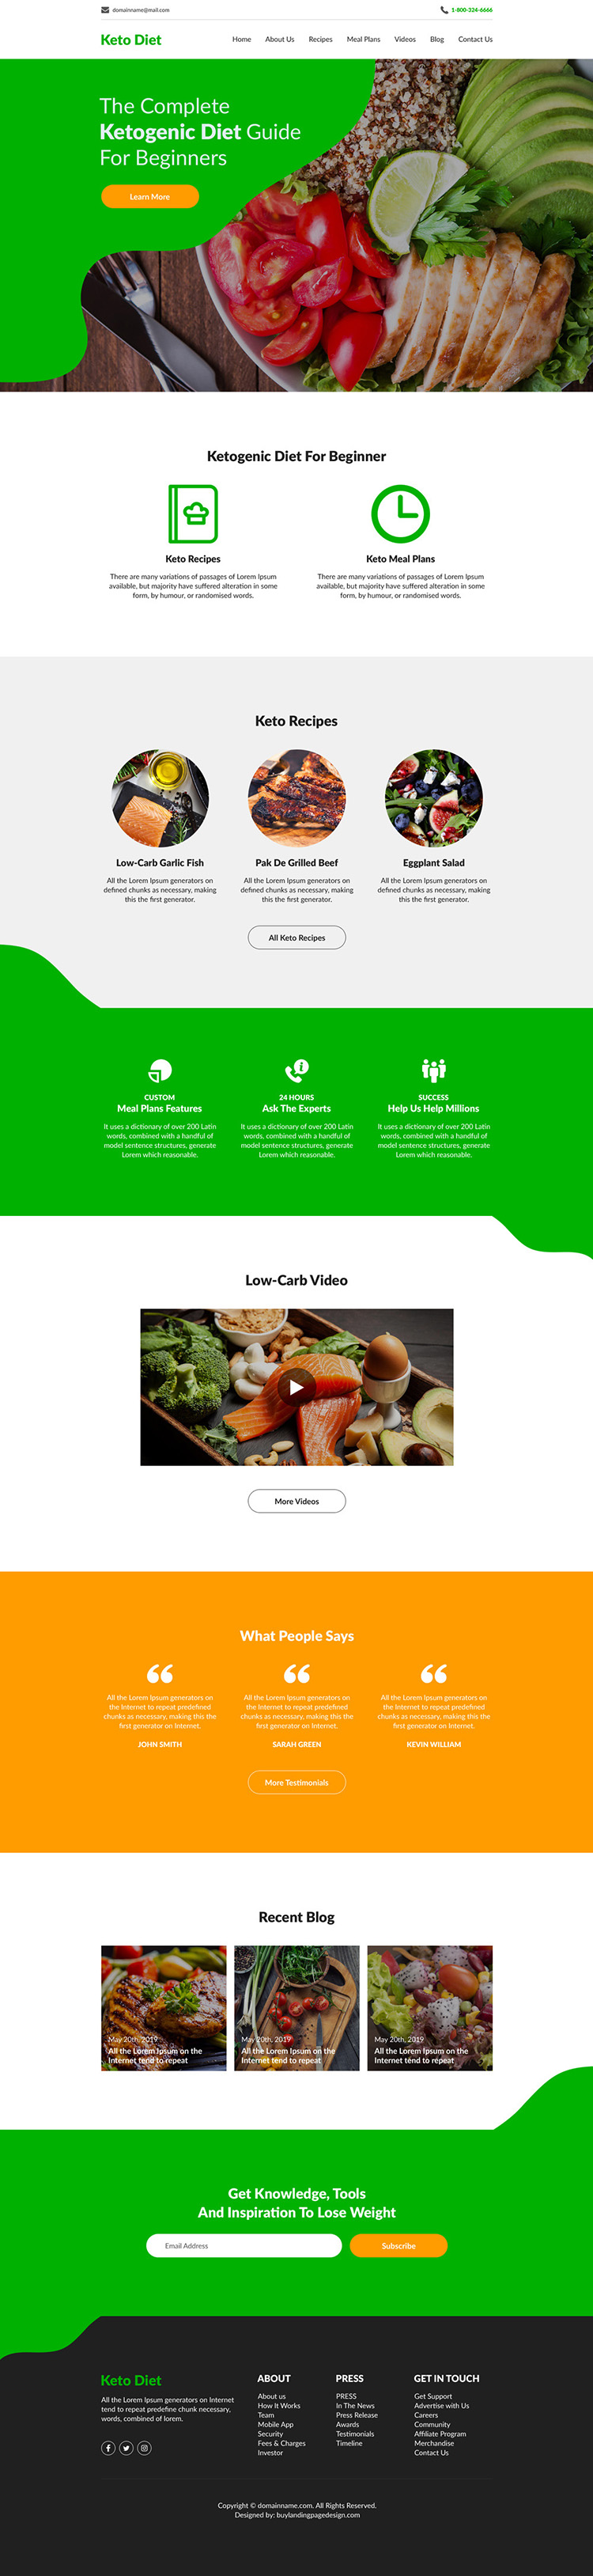 keto diet best weight loss responsive website design